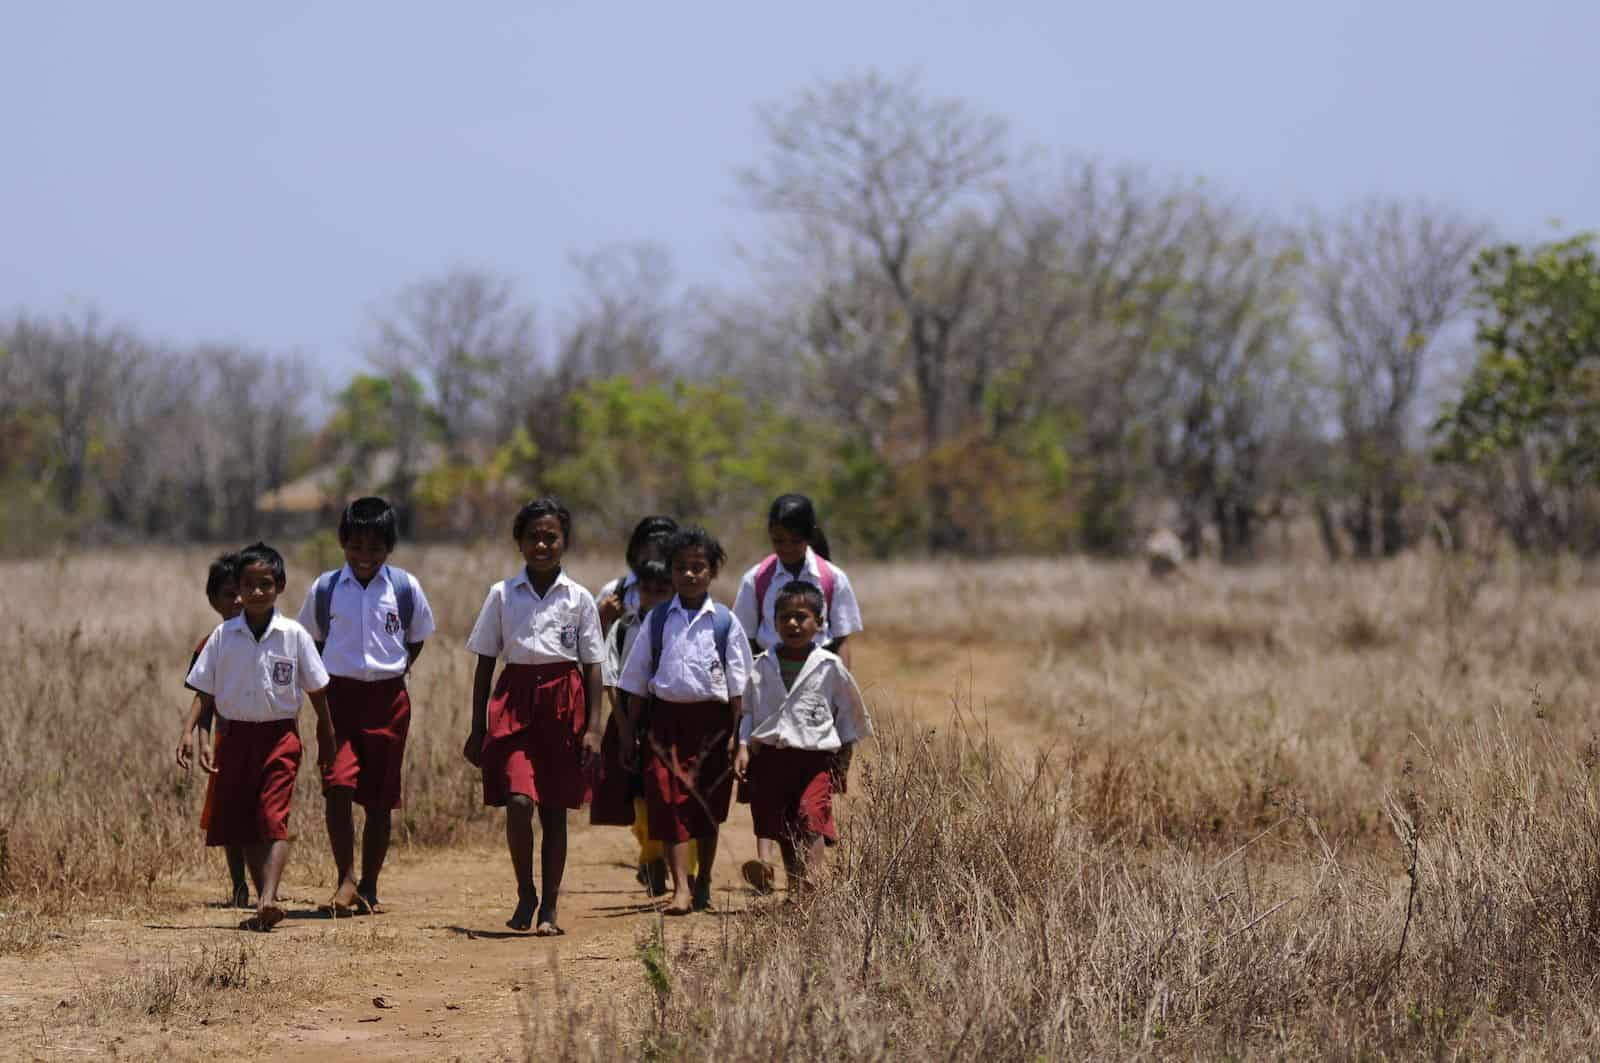 A group of students wearing red and white school uniforms walk down a dirt road in a brown field with trees in the background.